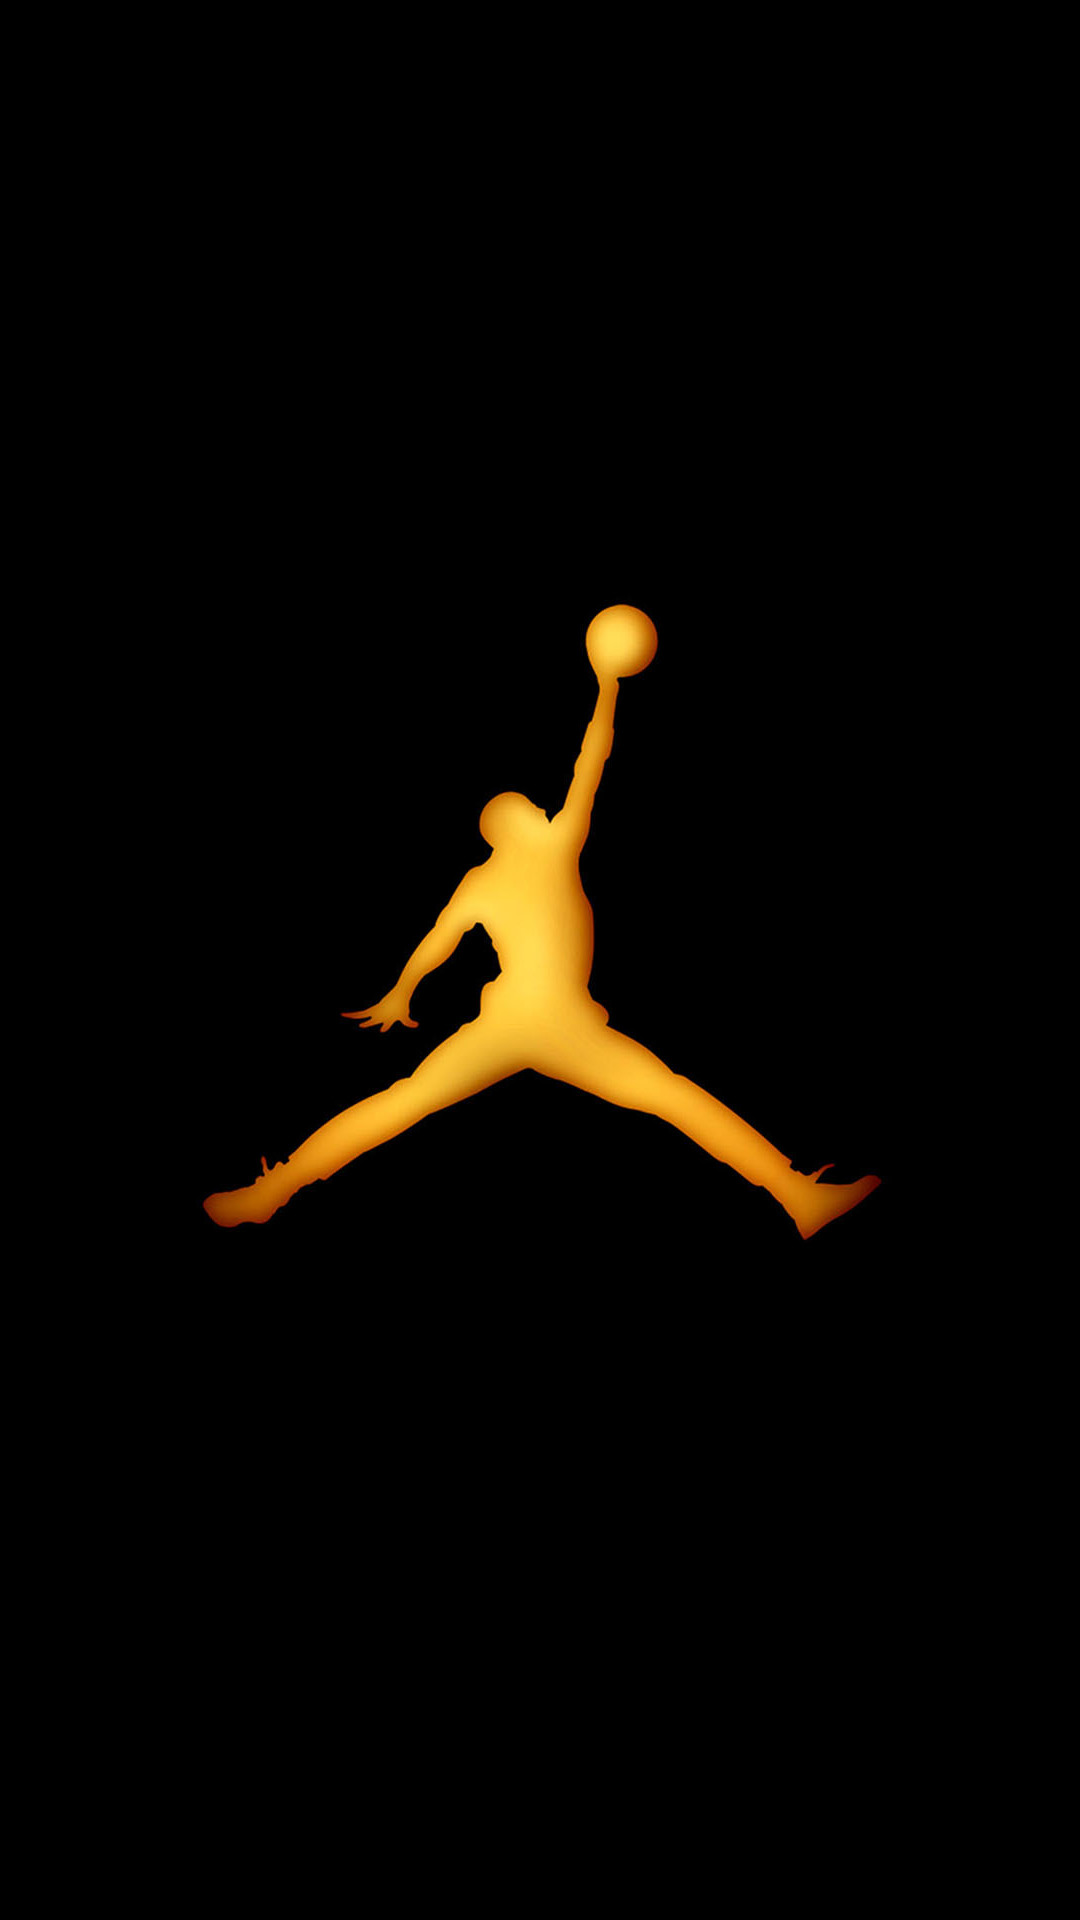 Basketball Sport Layup Outline iPhone 8 Wallpapers Download 1080x1920